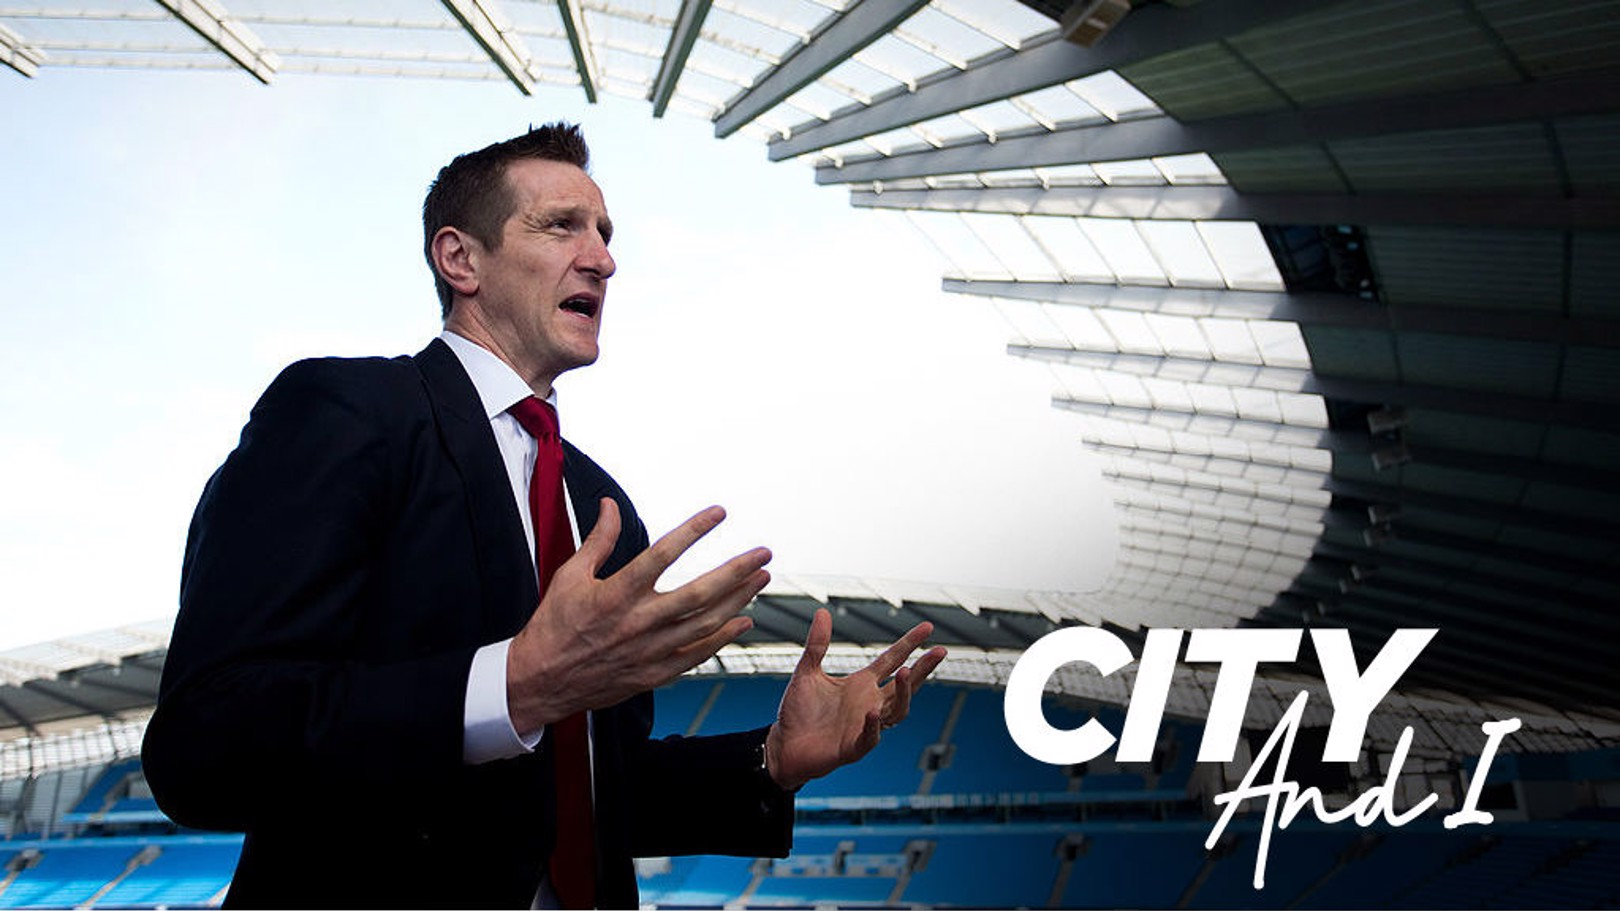 City and I: Will Greenwood's life in Blue